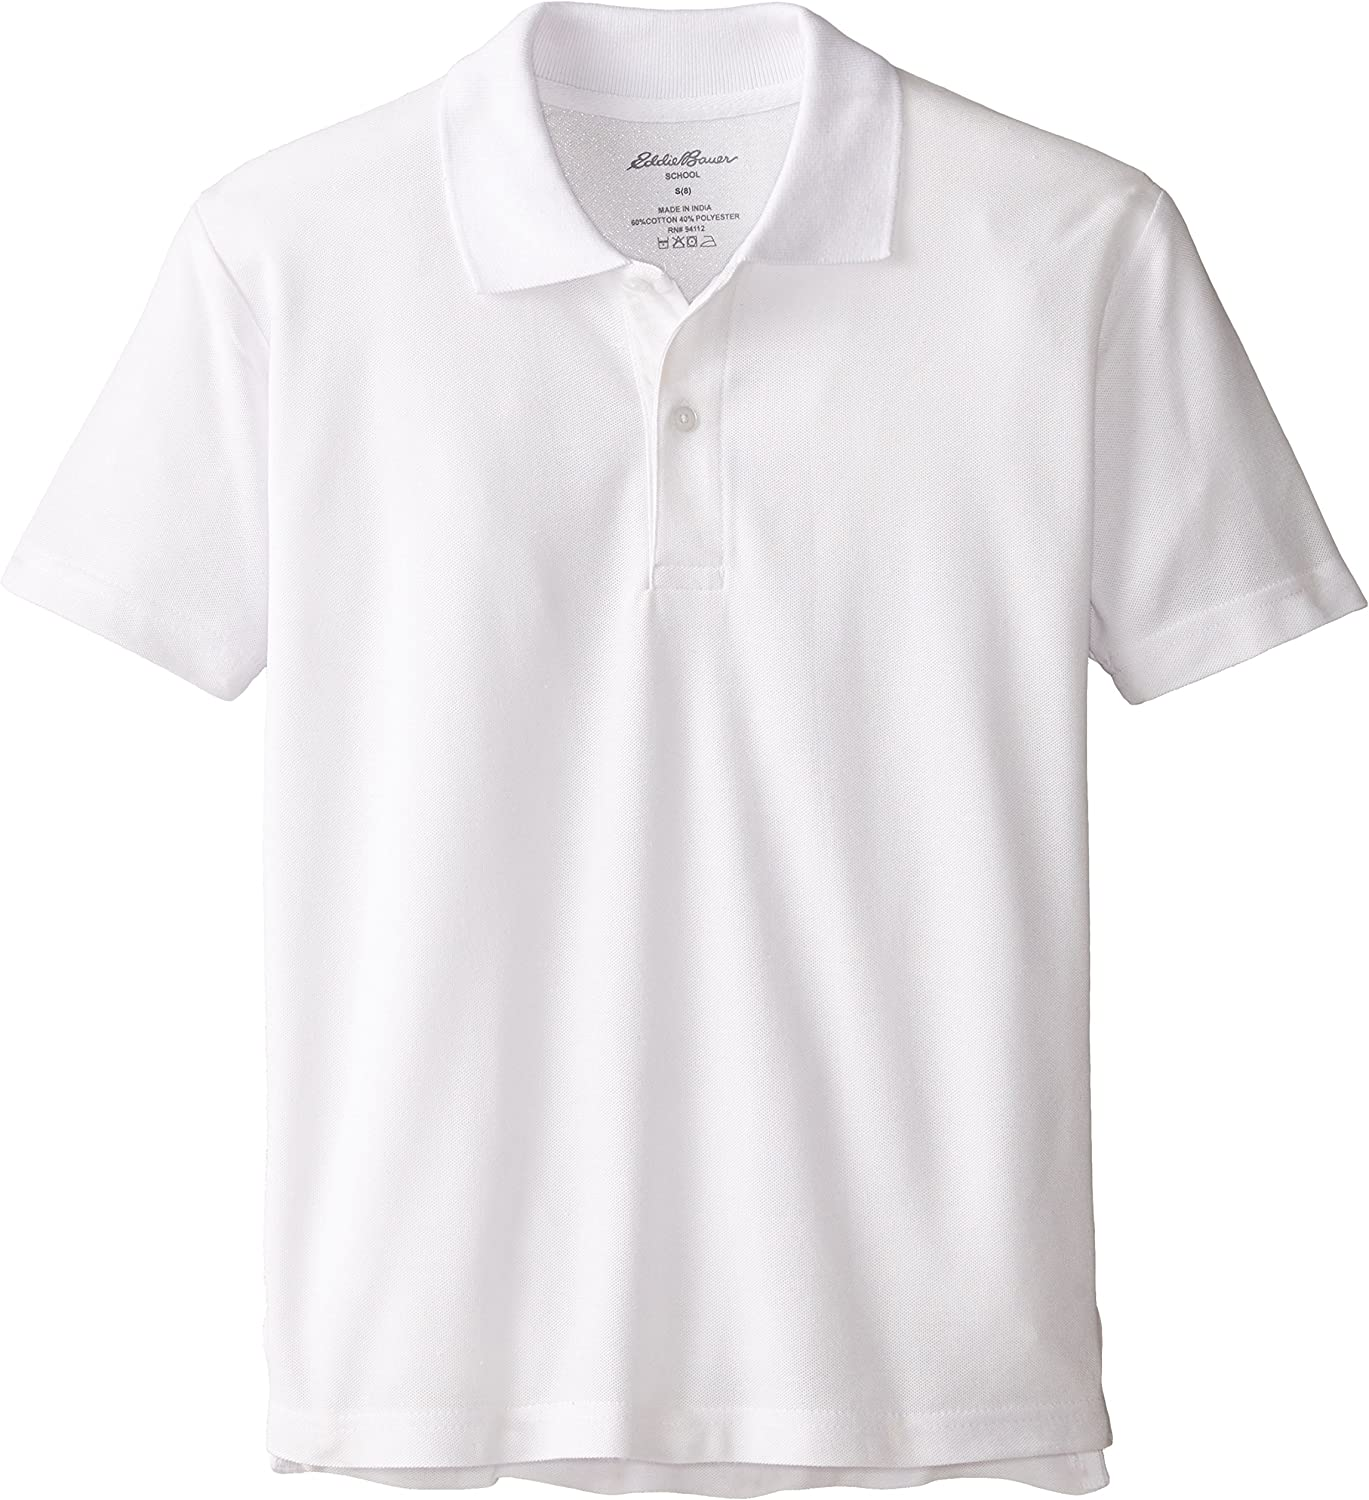 Eddie Bauer Boys Short or Long Sleeve Polo Shirt More Styles Available